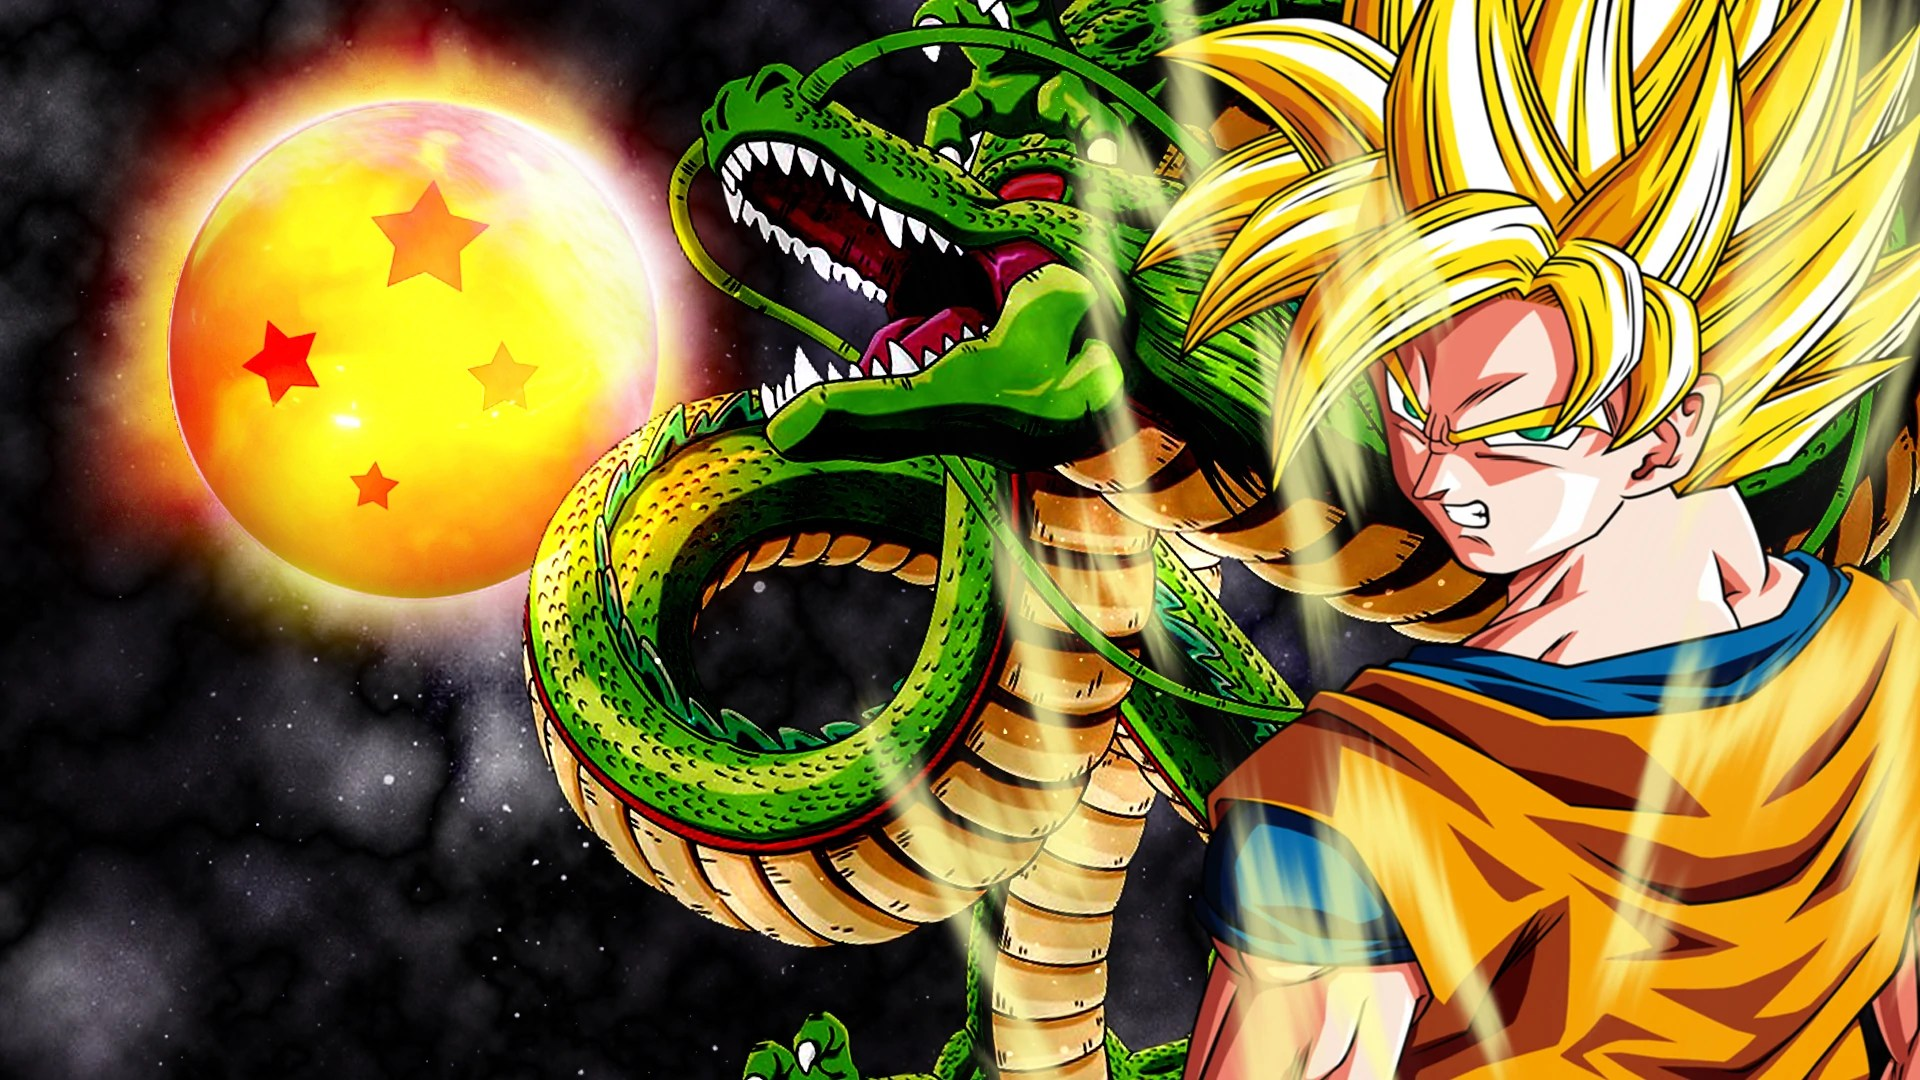 New Dragon Ball Z Series Confirmed Premiers April 6 On